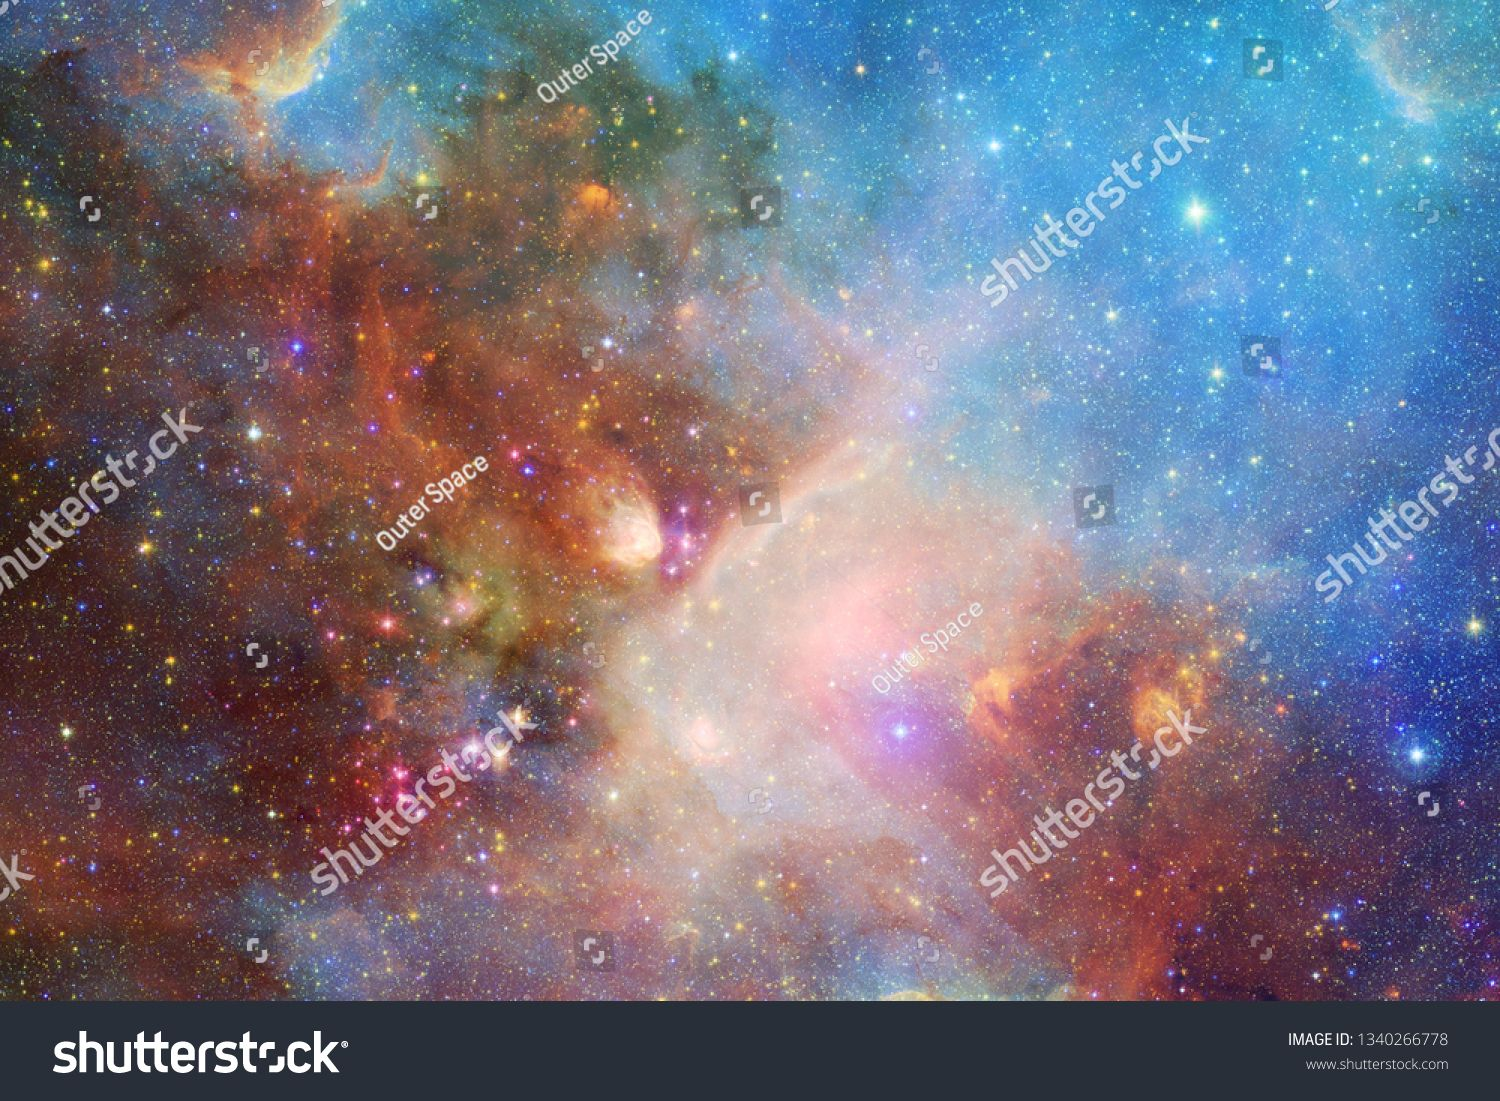 Deep Space Science Fiction Fantasy In High Resolution Ideal For Wallpaper Elements Of This Image Furnished In 2020 Science Fiction Fantasy Deep Space Science Fiction